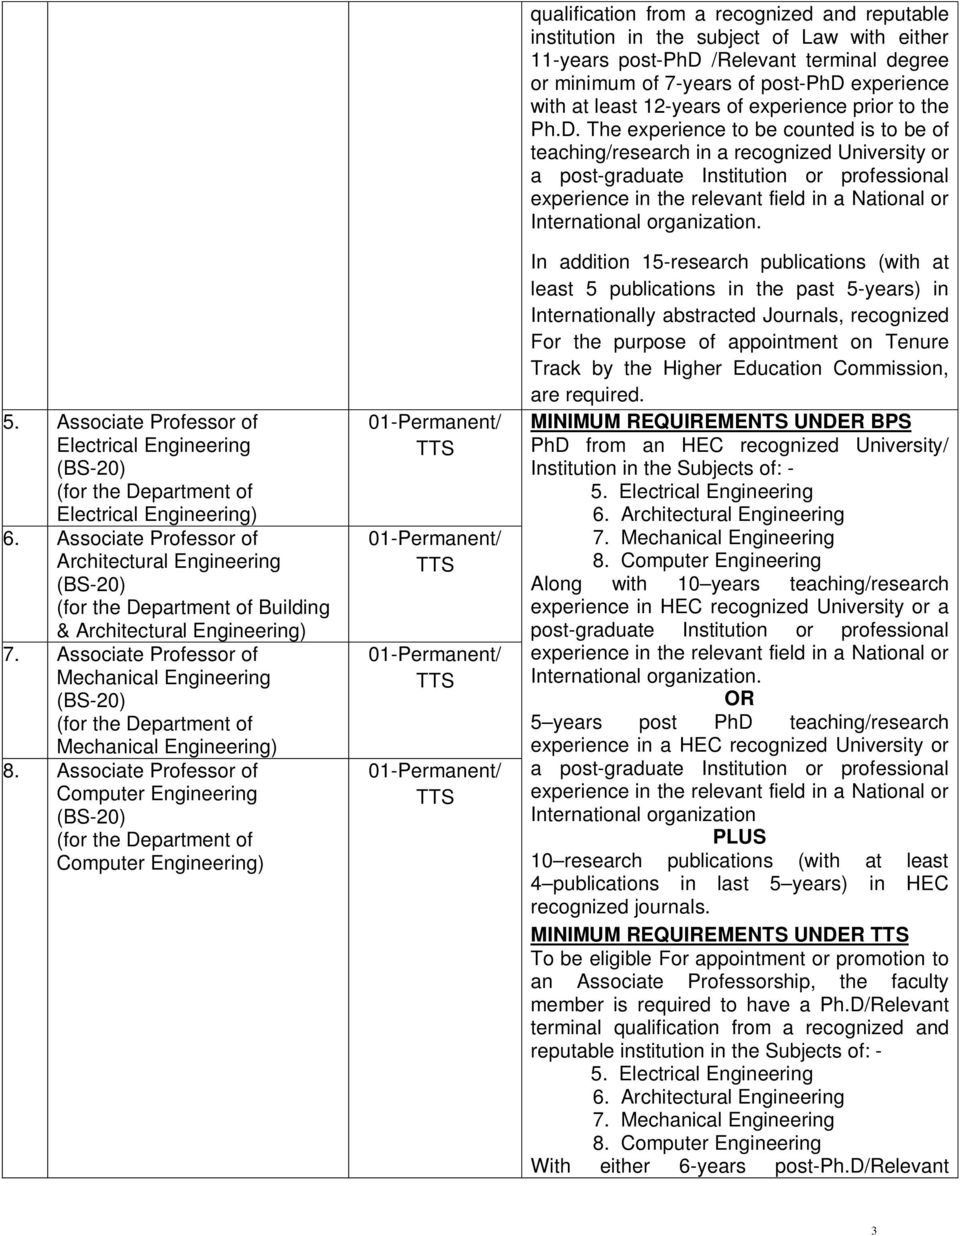 Associate Professor of Mechanical Engineering (BS-20) (for the Department of Mechanical Engineering) 8.